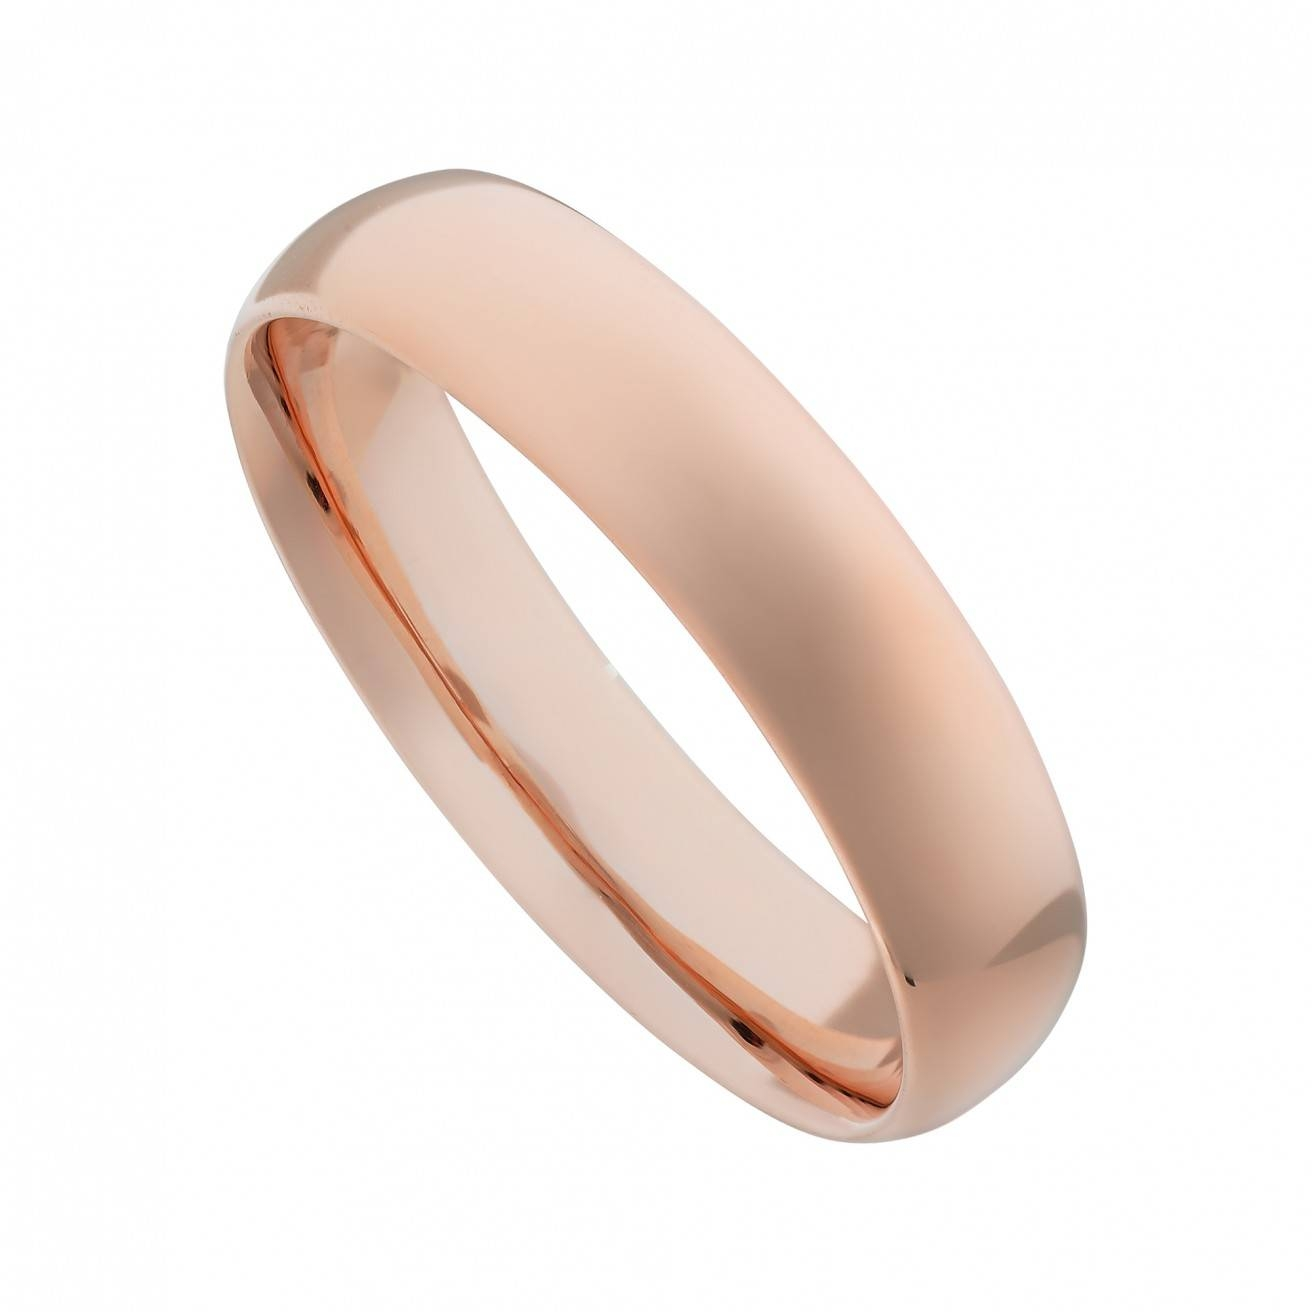 Buy Men's Wedding Rings Online – Fraser Hart Pertaining To Male Rose Gold Wedding Bands (View 15 of 15)